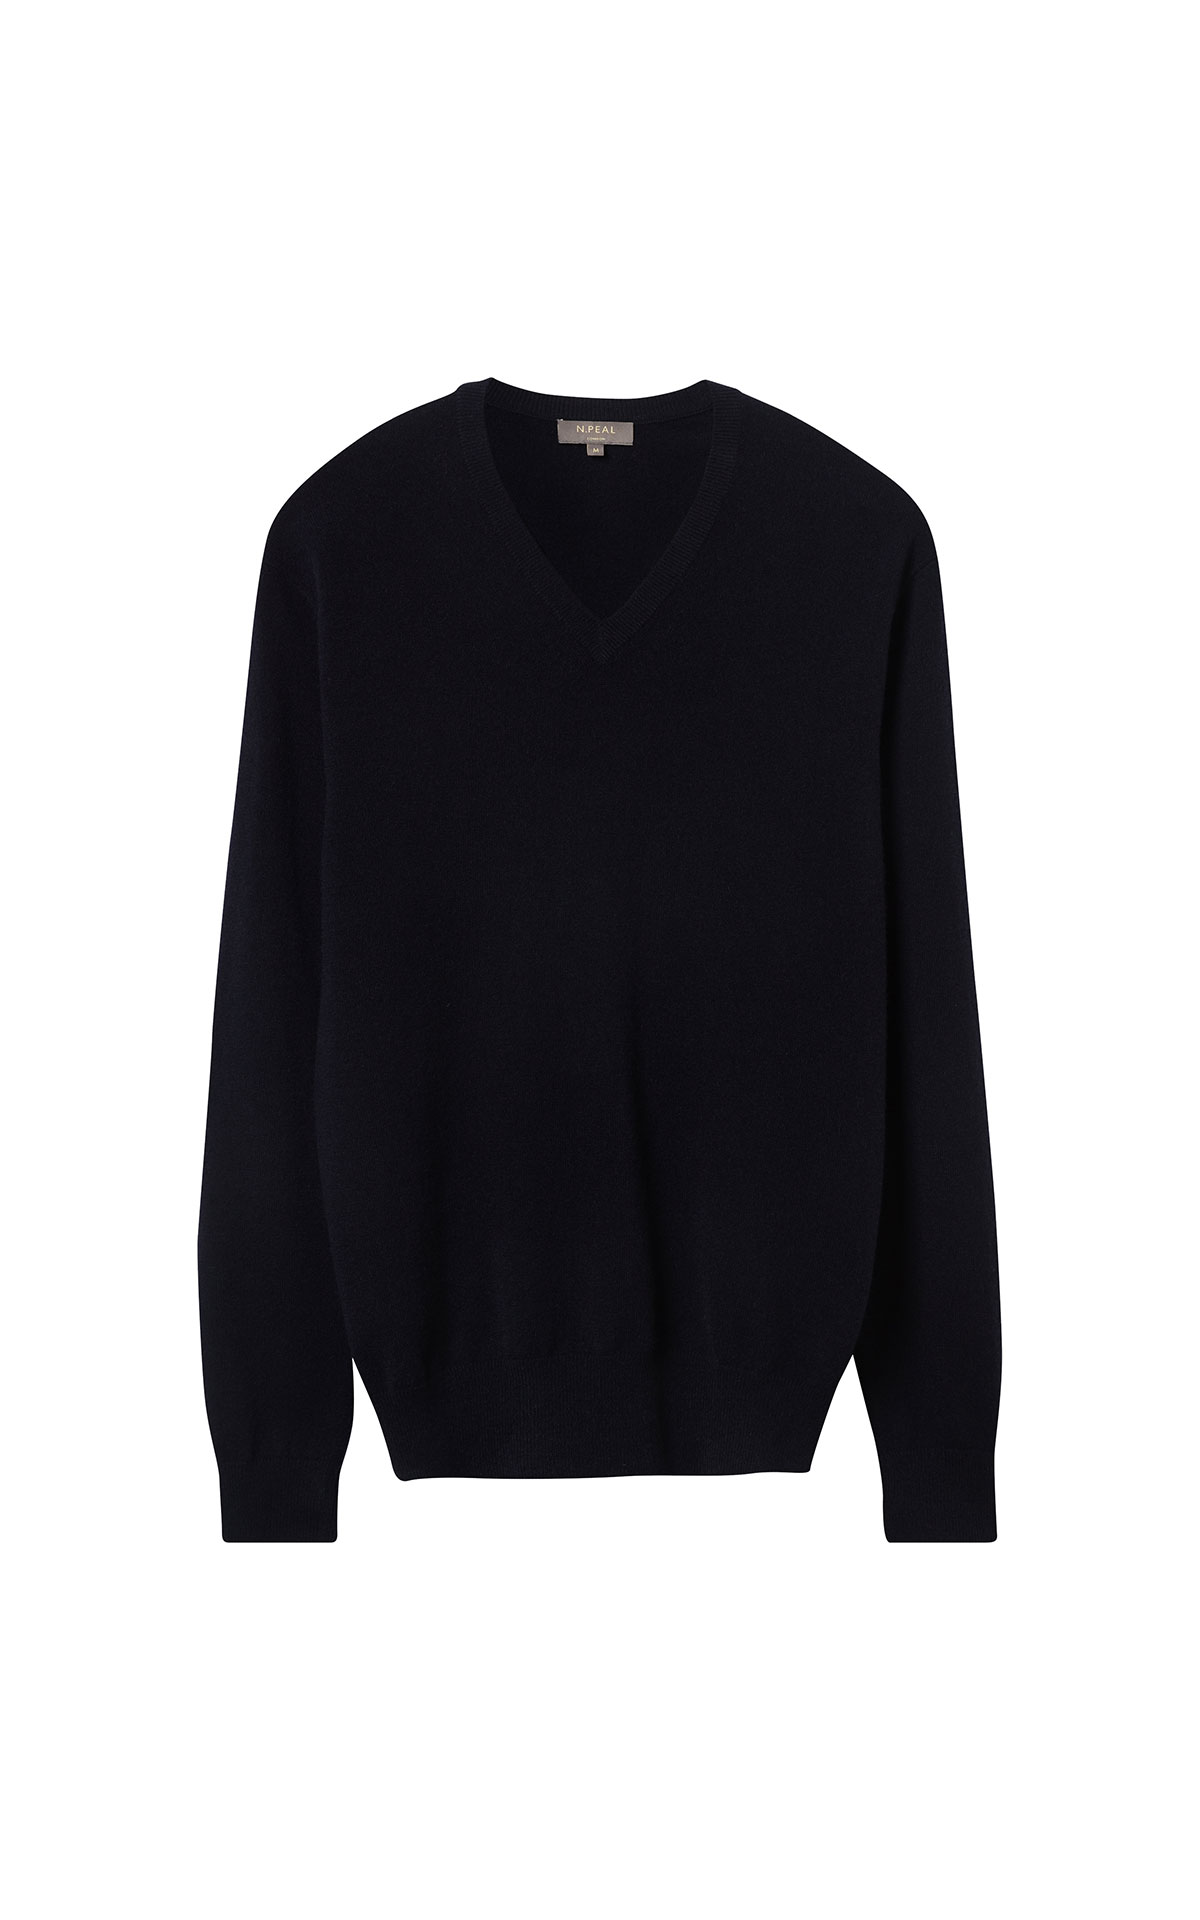 N.Peal Round neck sweater black from Bicester Village